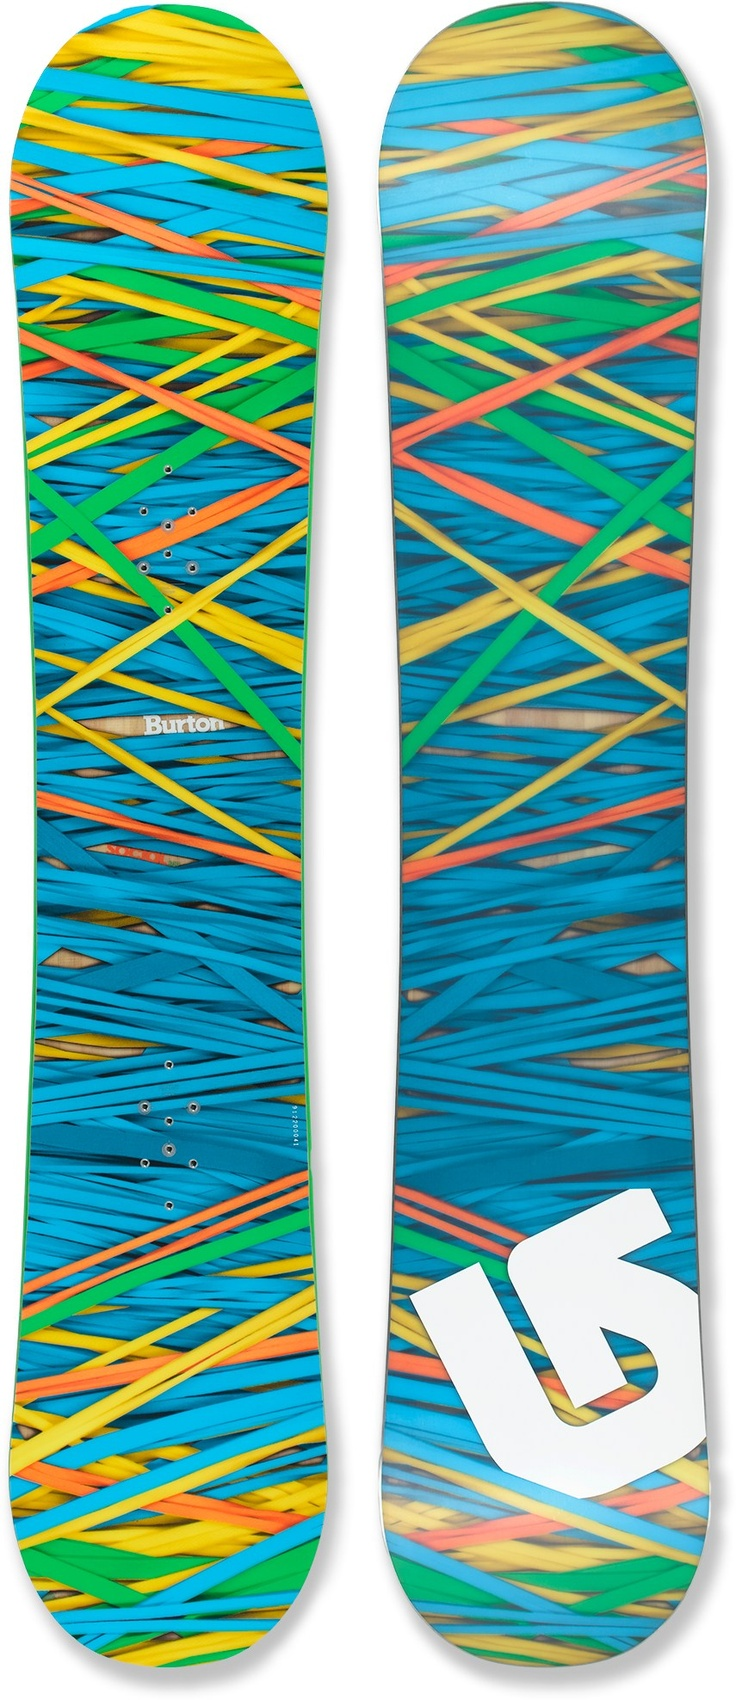 Burton Social Snowboard - Women's - 2012/2013 at REI.com.... WANT WANT WANT